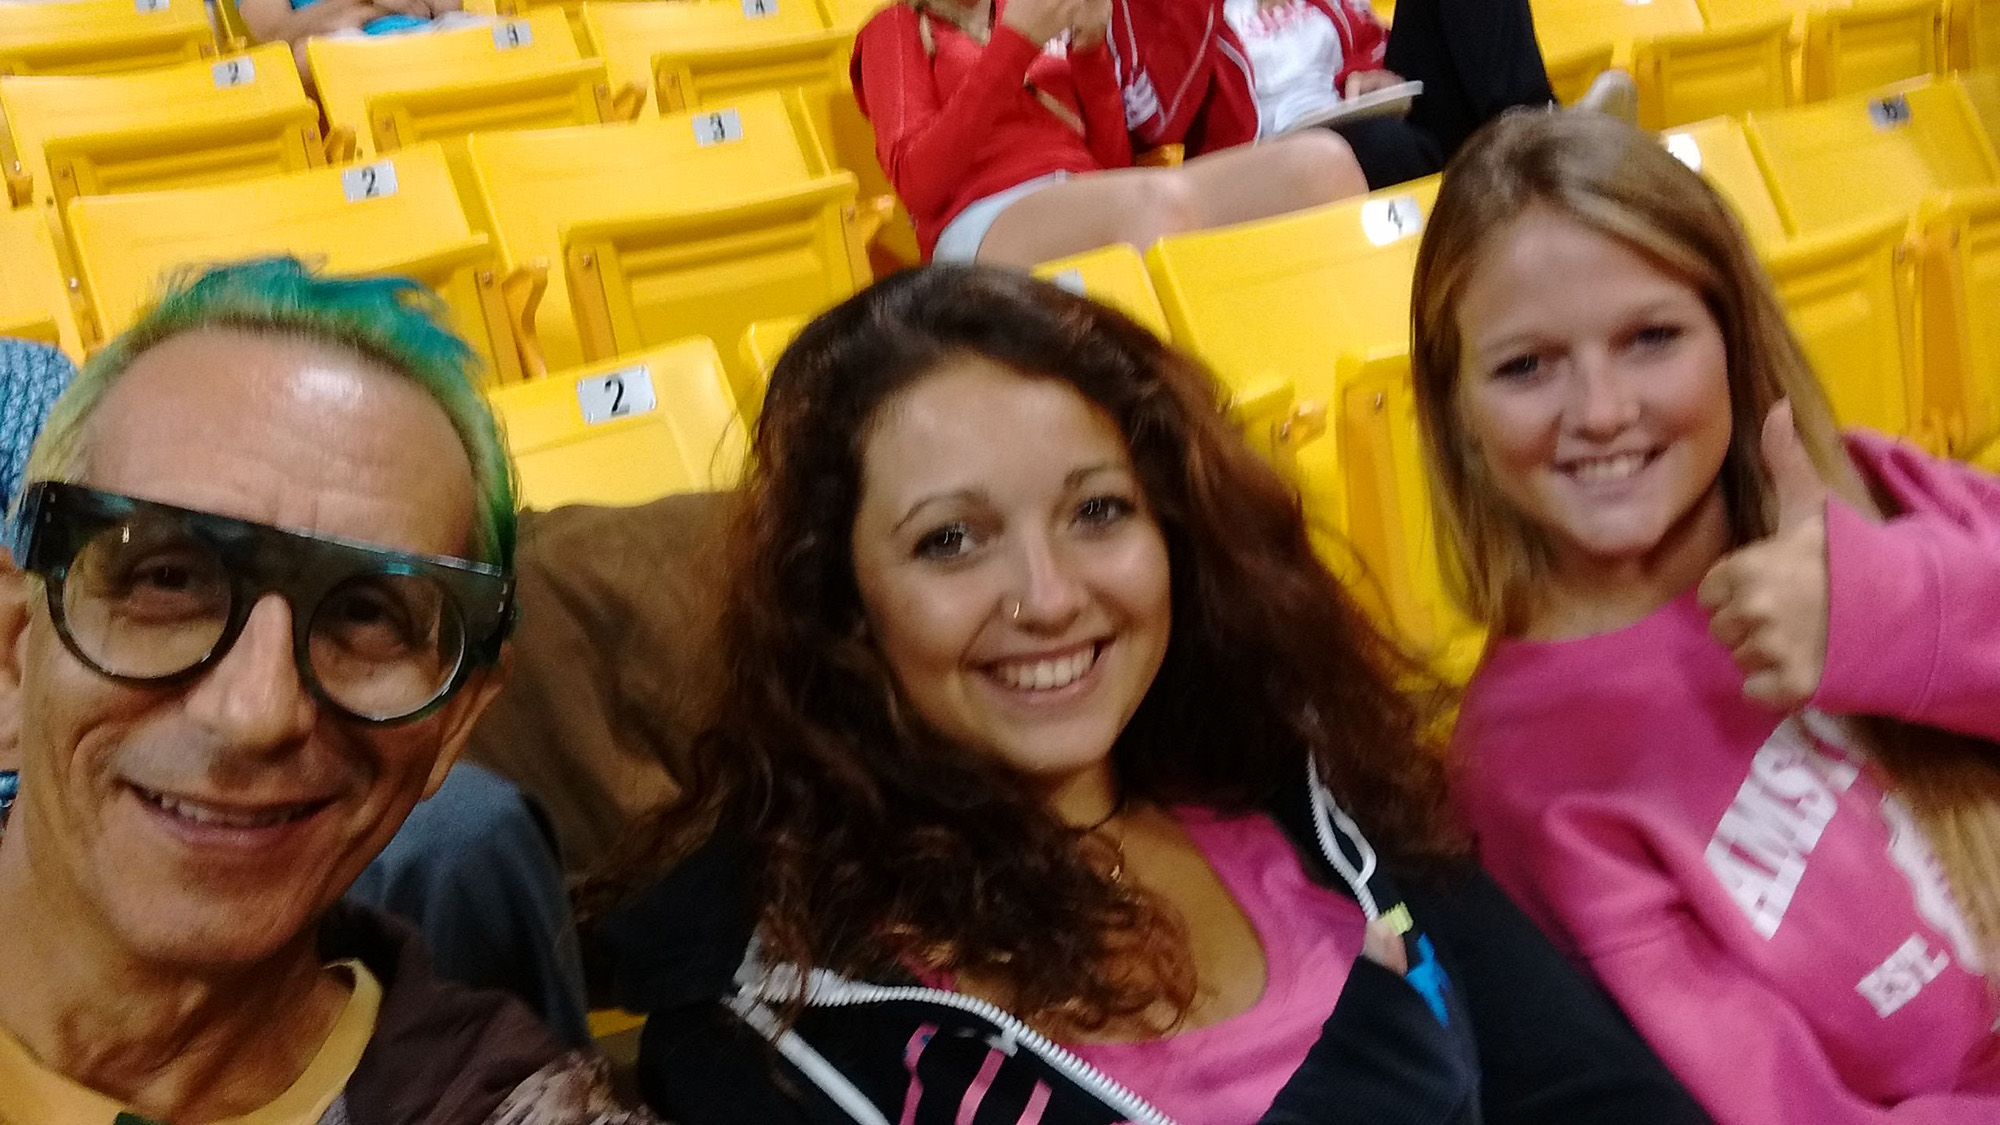 Glenn, Zeinab & Stefanie in the stands at The Pyramid in Long Beach, CA